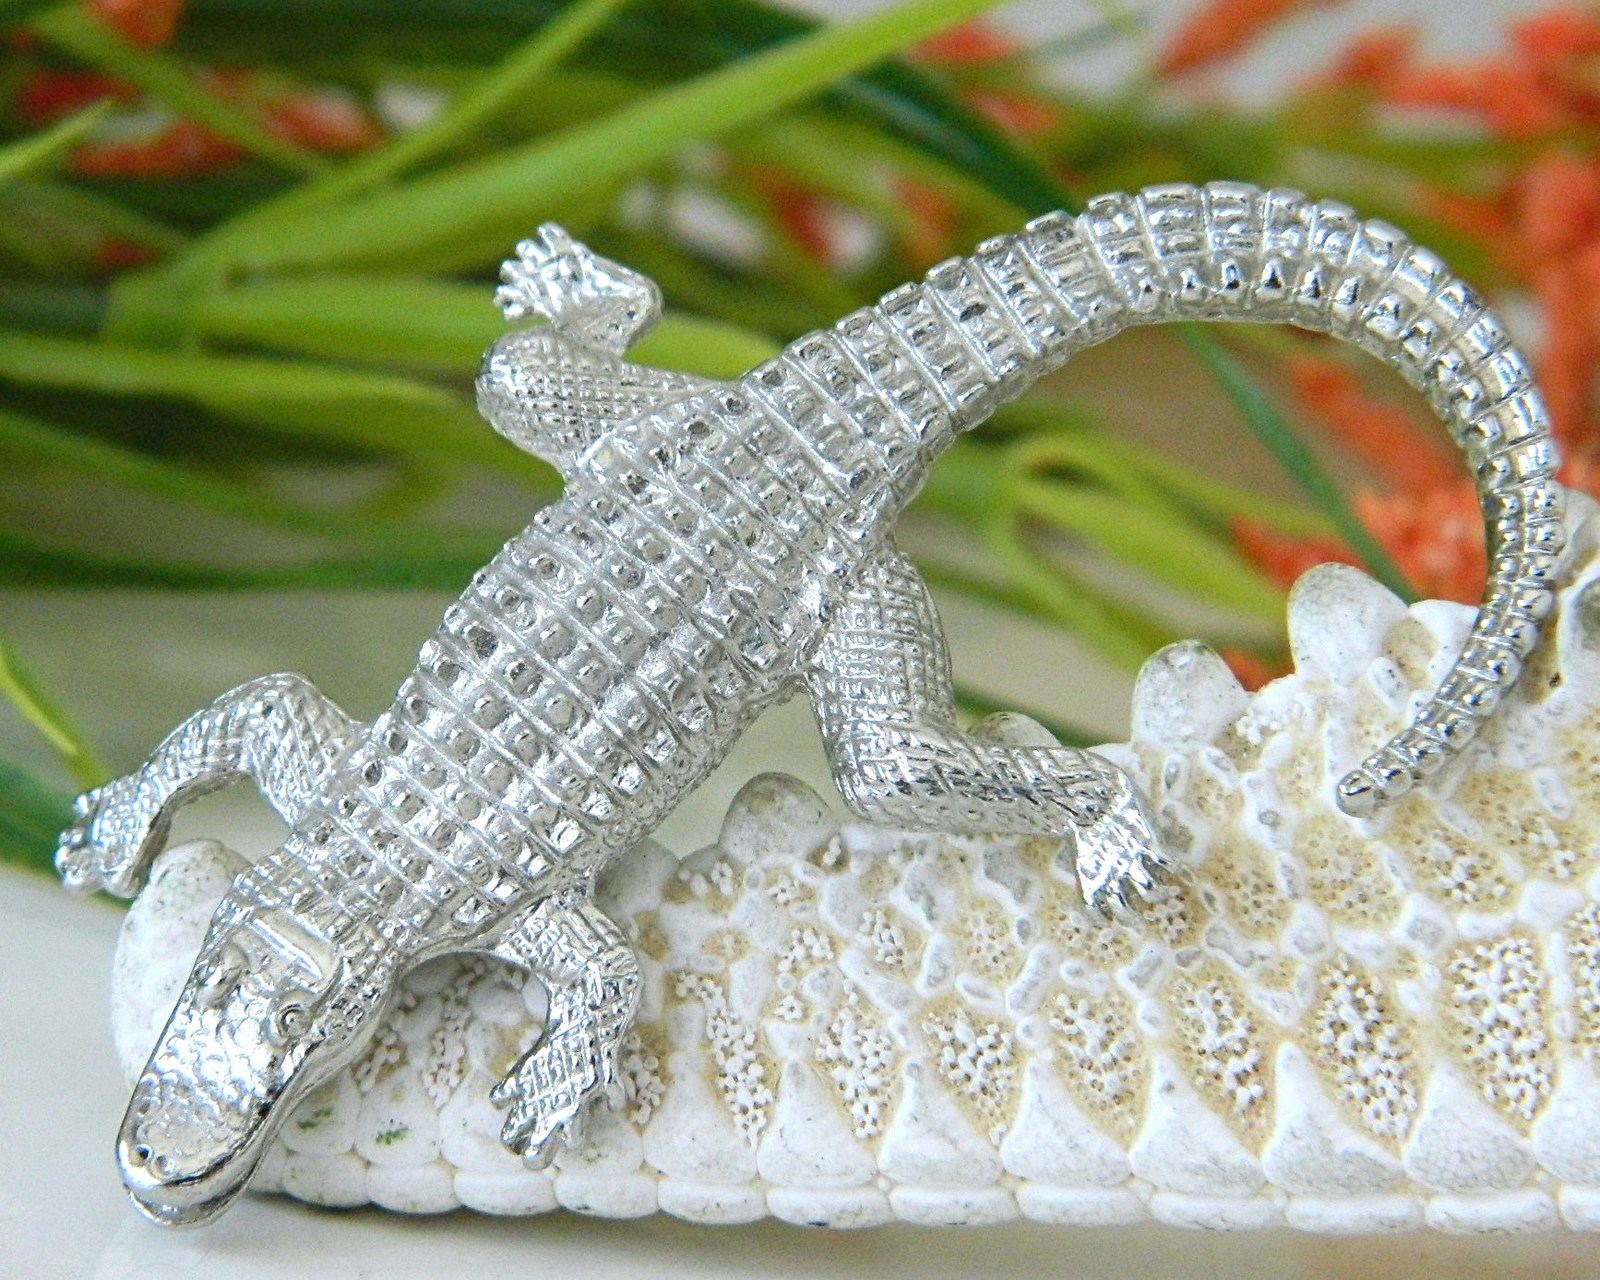 Vintage Alligator Crocodile Brooch Pin Figural Silver Tone  image 6